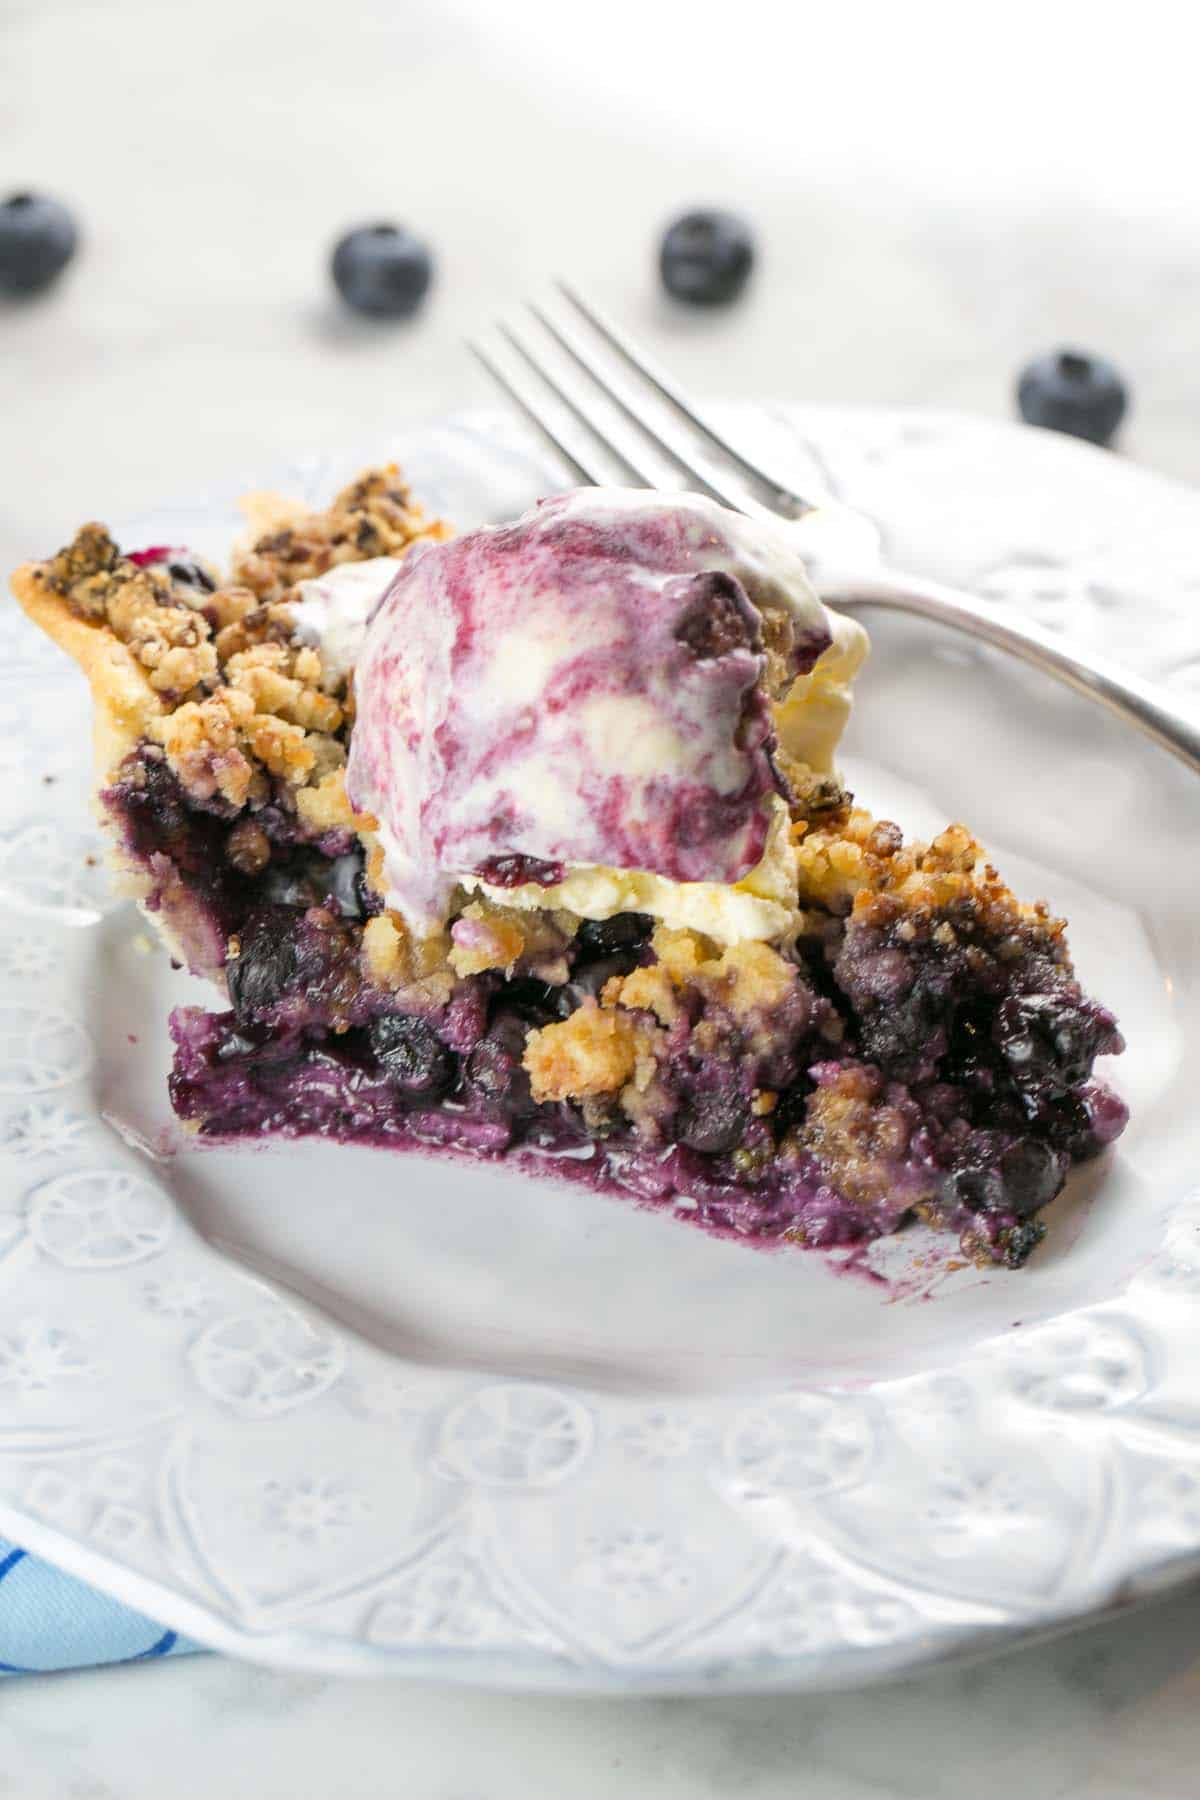 Almond Crumble Blueberry Pie: fresh blueberries covered with a crunchy almond paste crumble. Perfect with fresh summer blueberries... or even use frozen. {Bunsen Burner Bakery} #pie #blueberrypie #almond #fruitpies